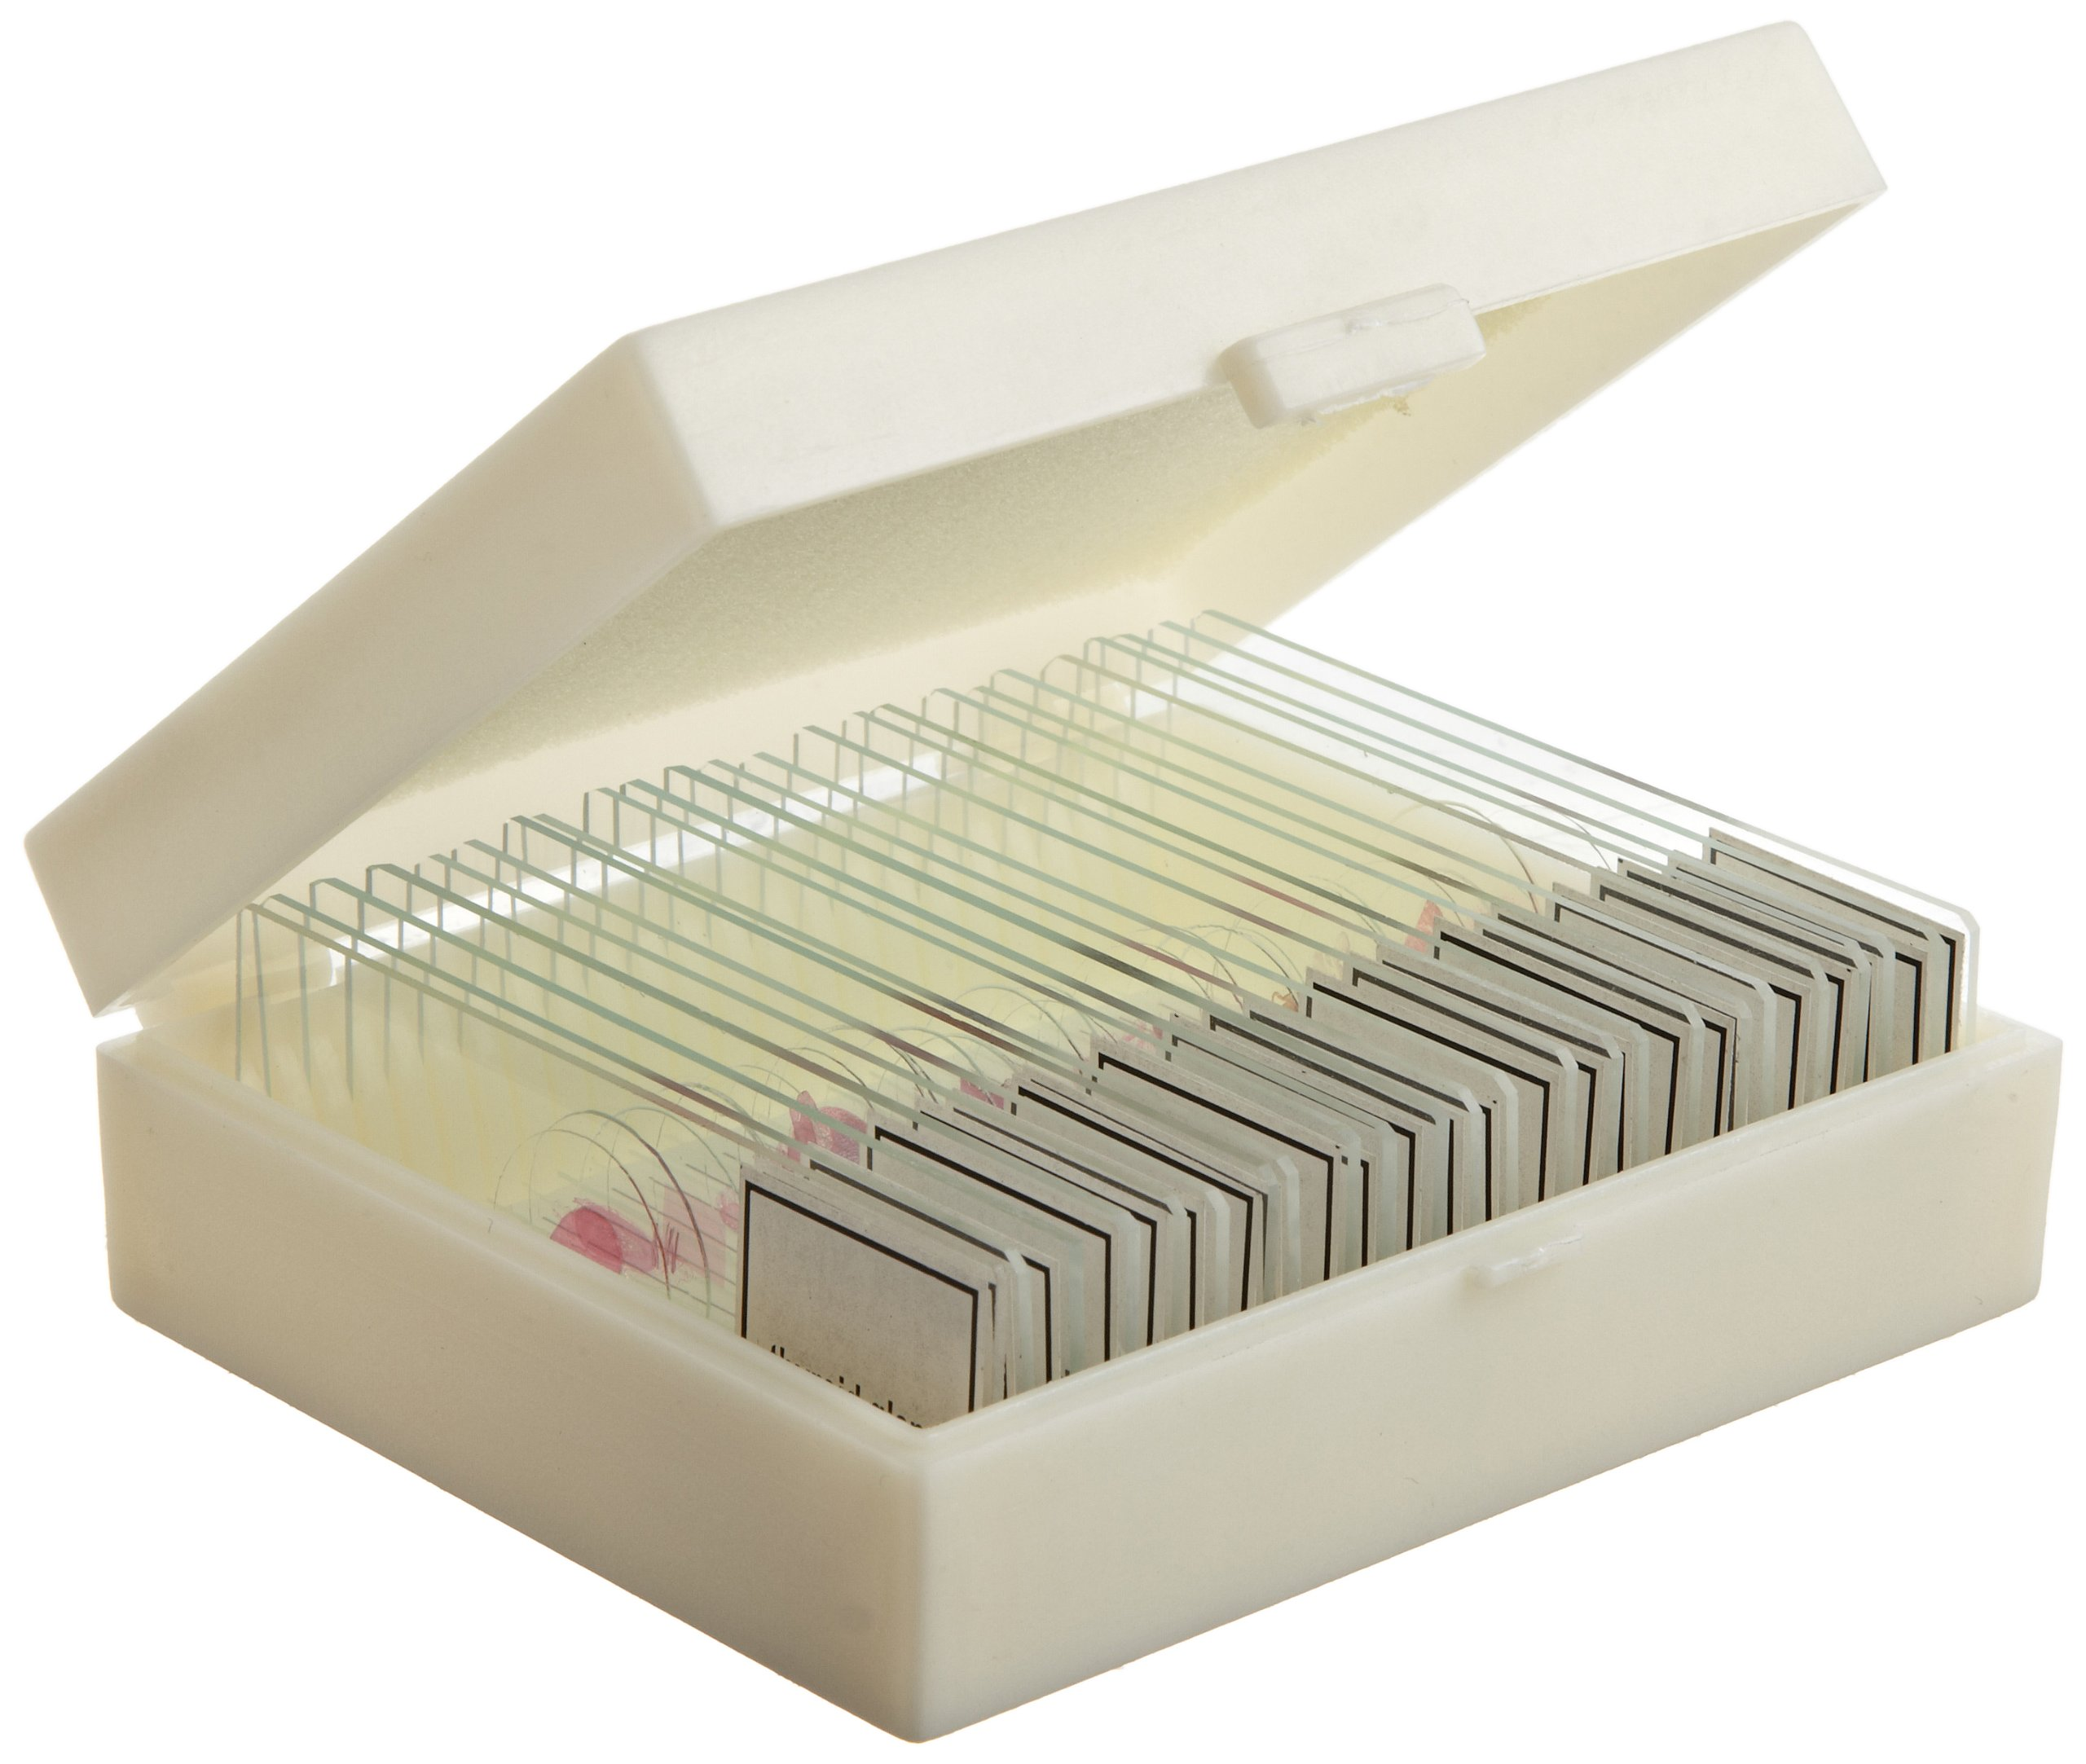 ETA hand2mind Prepared Glass Microscope Slides, Anatomy and Physiology (Pack of 24)